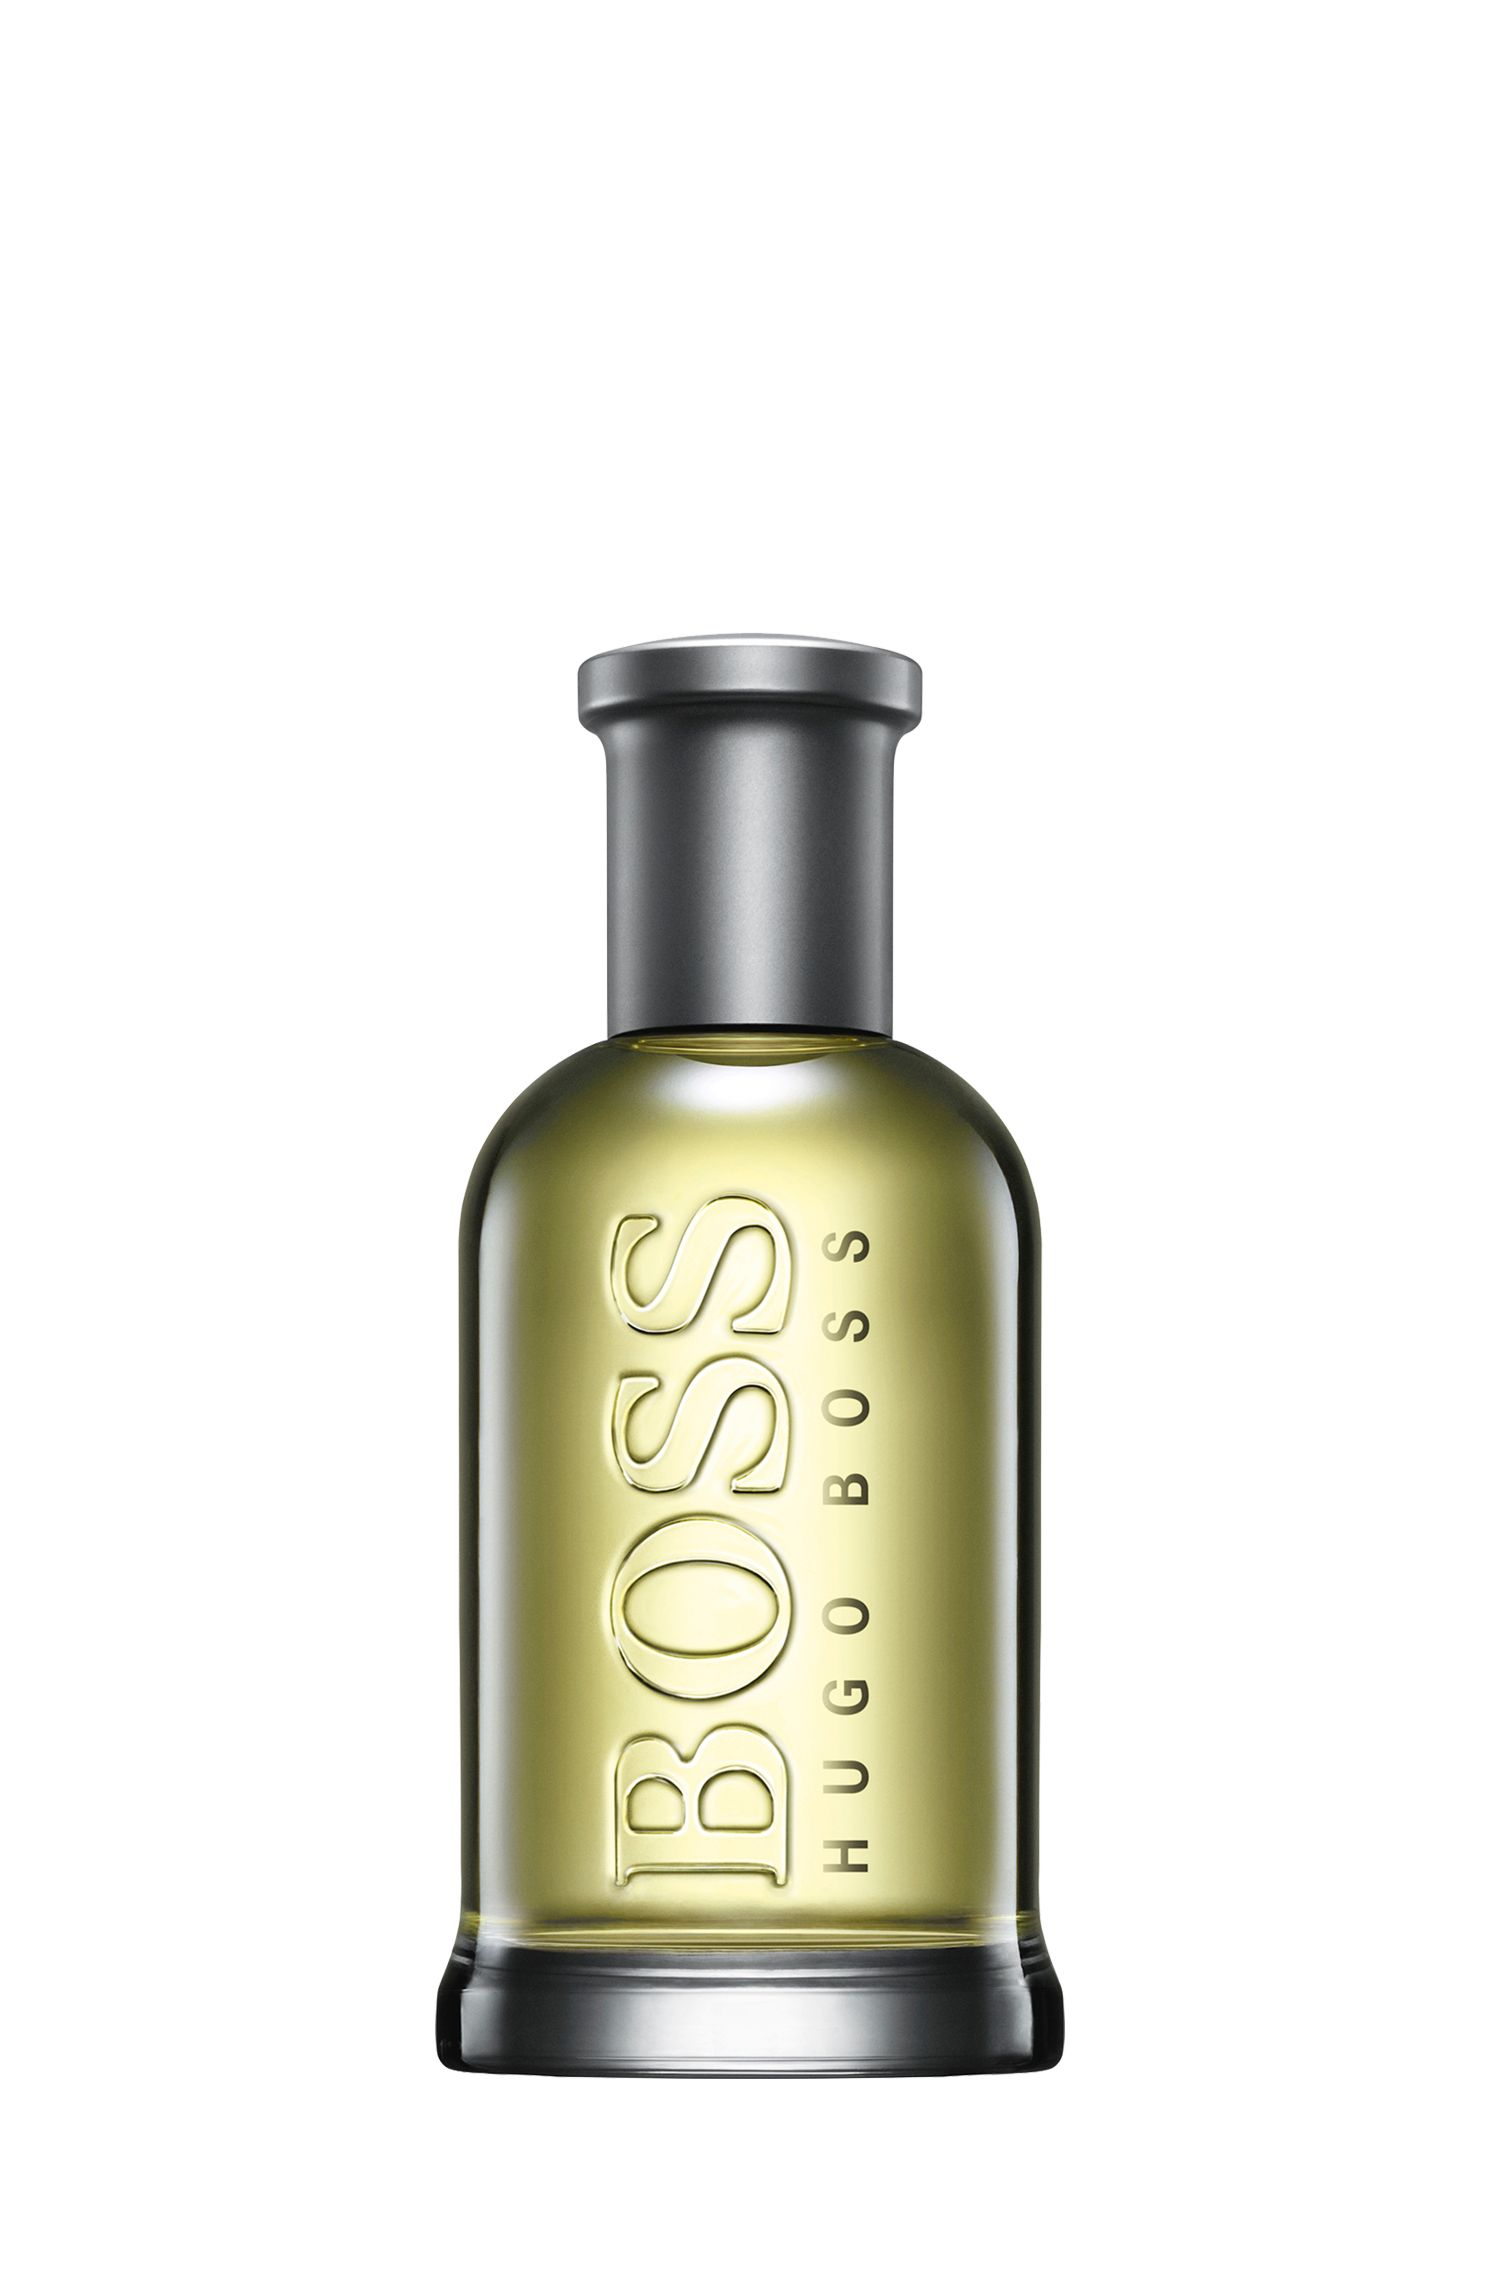 BOSS Bottled eau de toilette 50ml